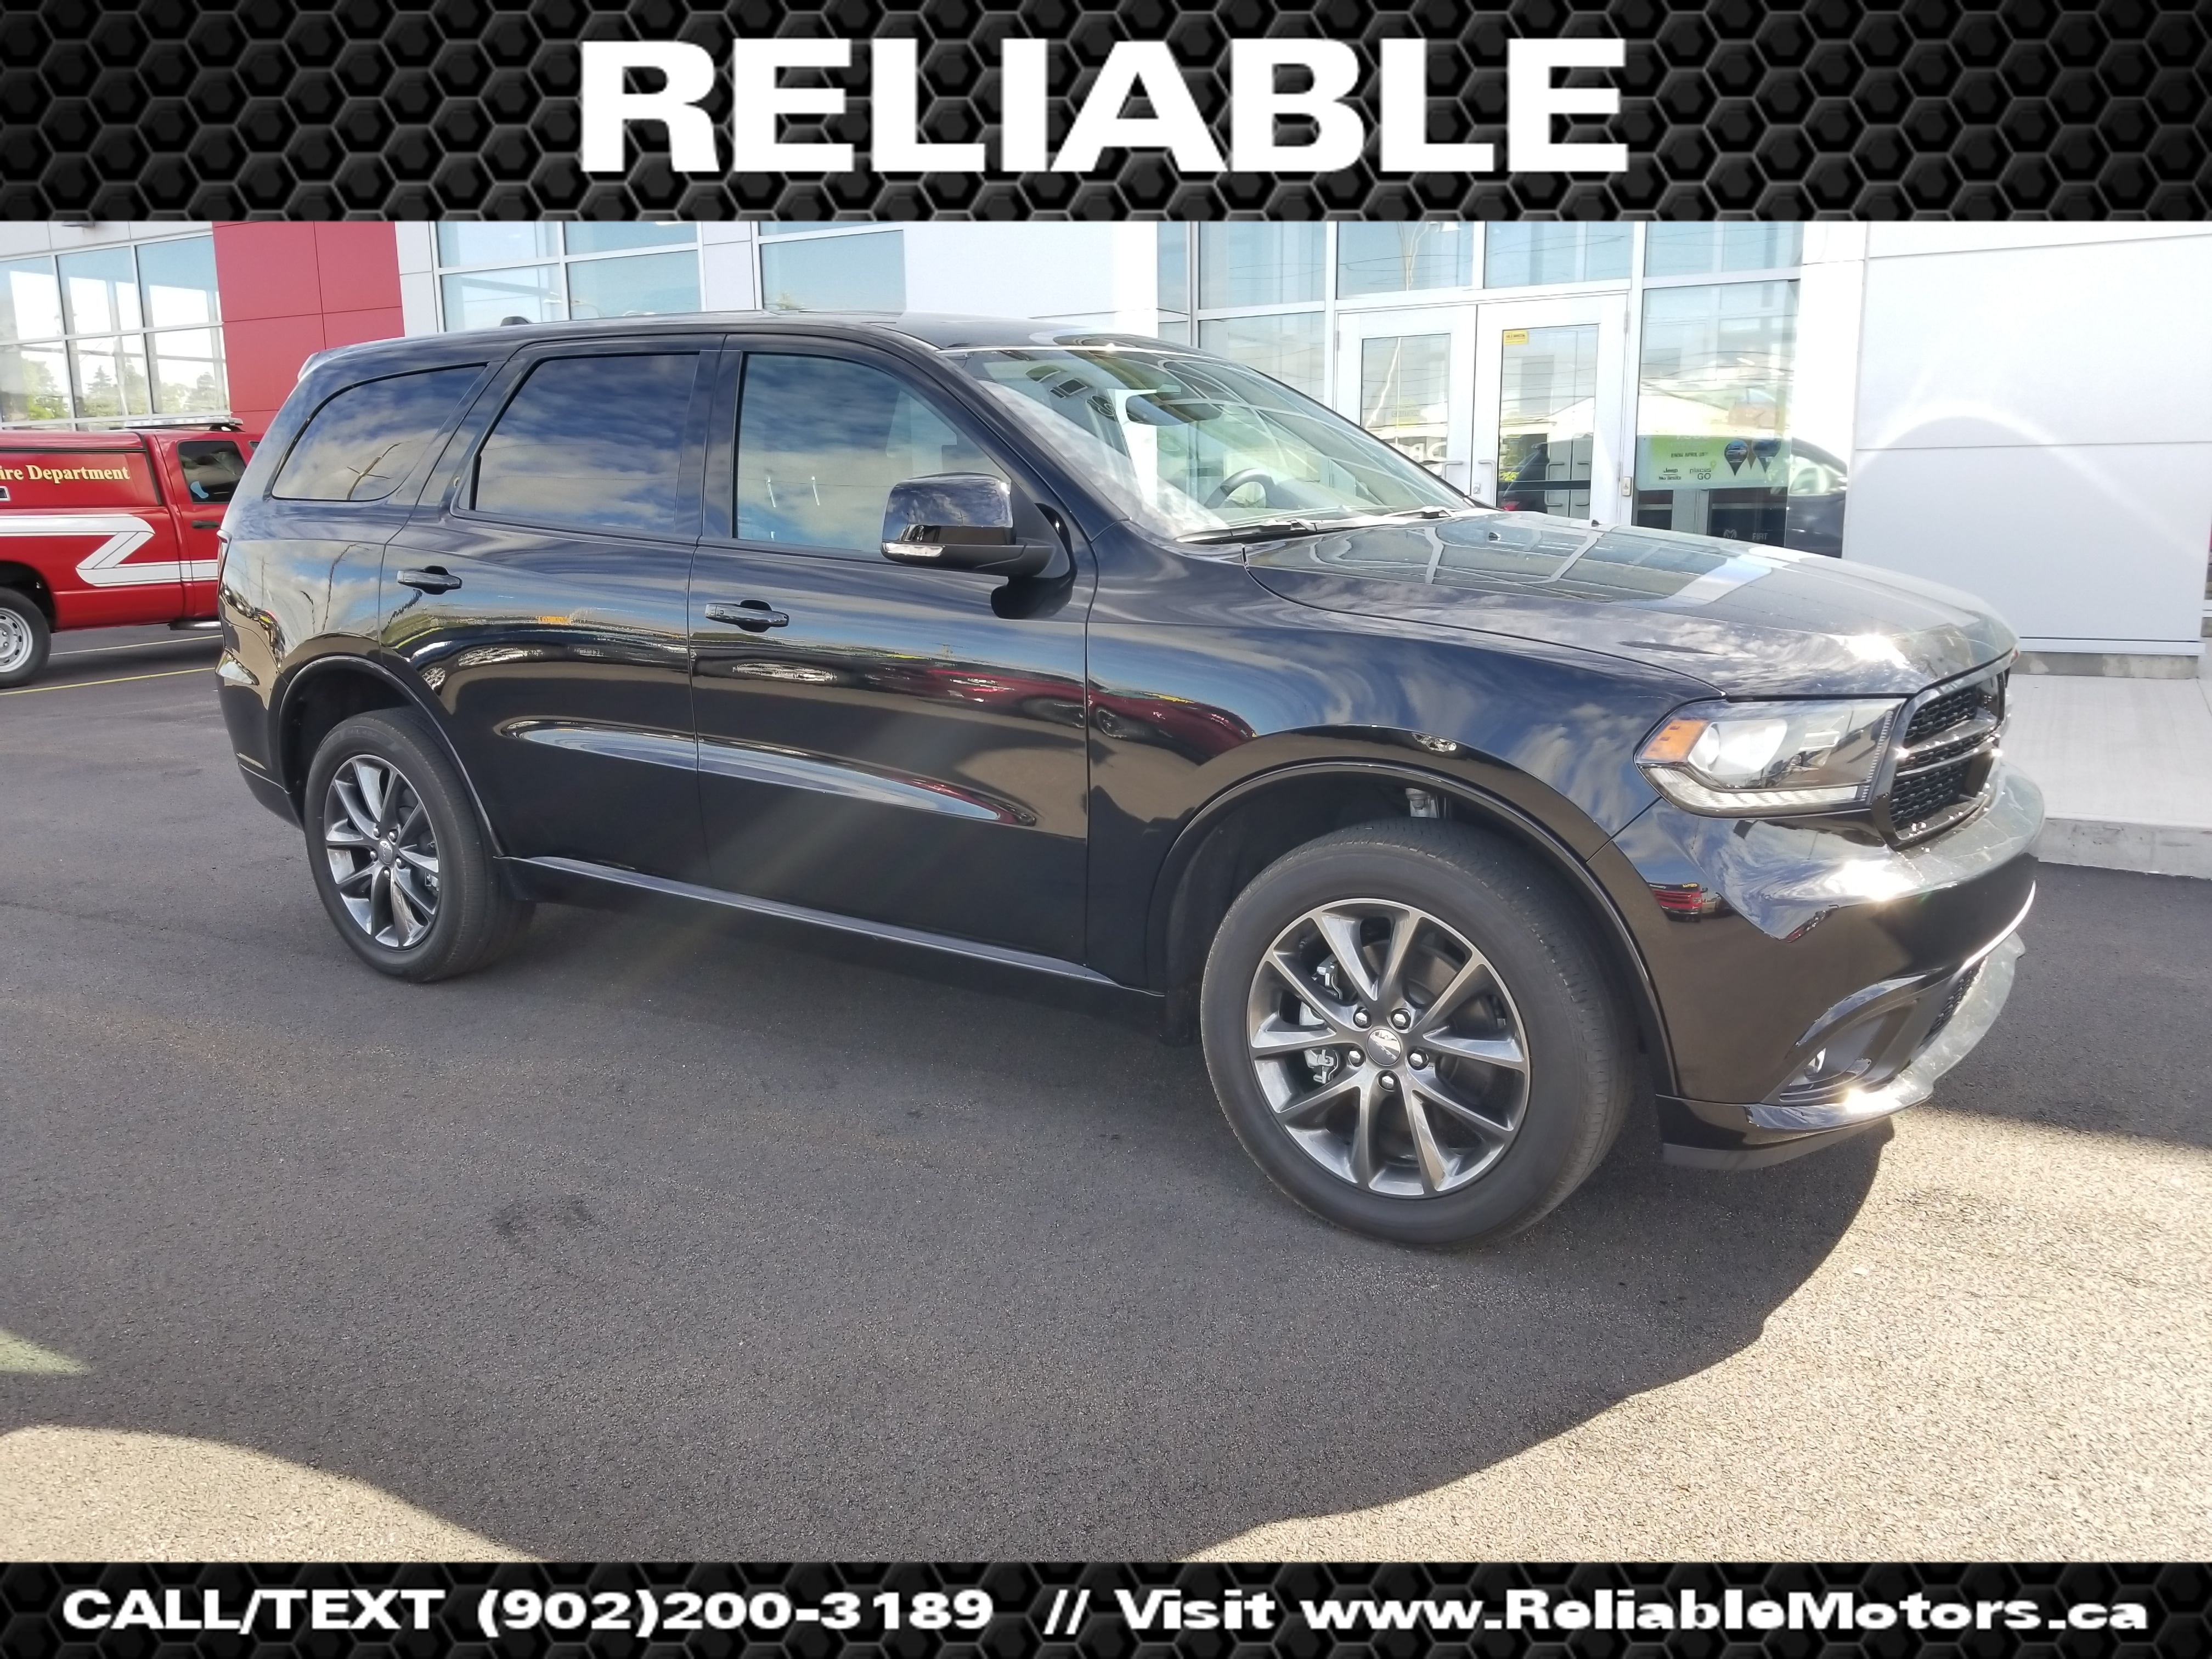 2017 Dodge Durango GT | AWD - 3rd row seating - DVD player - Front & middle row heated seats - Backup camera - Bluetooth - Sunroof -  SUV